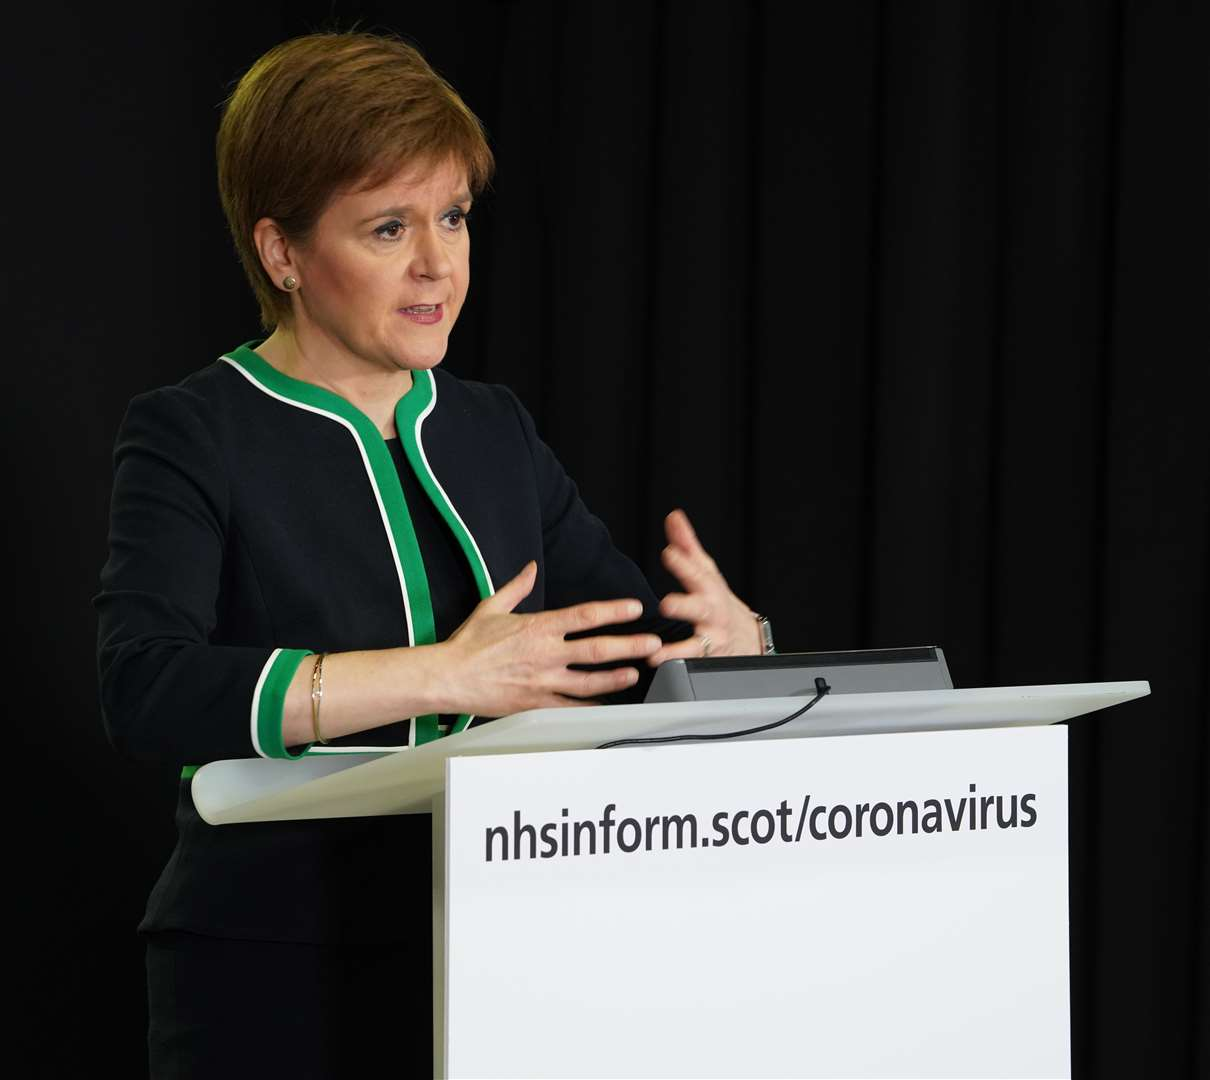 Nicola Sturgeon recommends face coverings in 'limited circumstances'